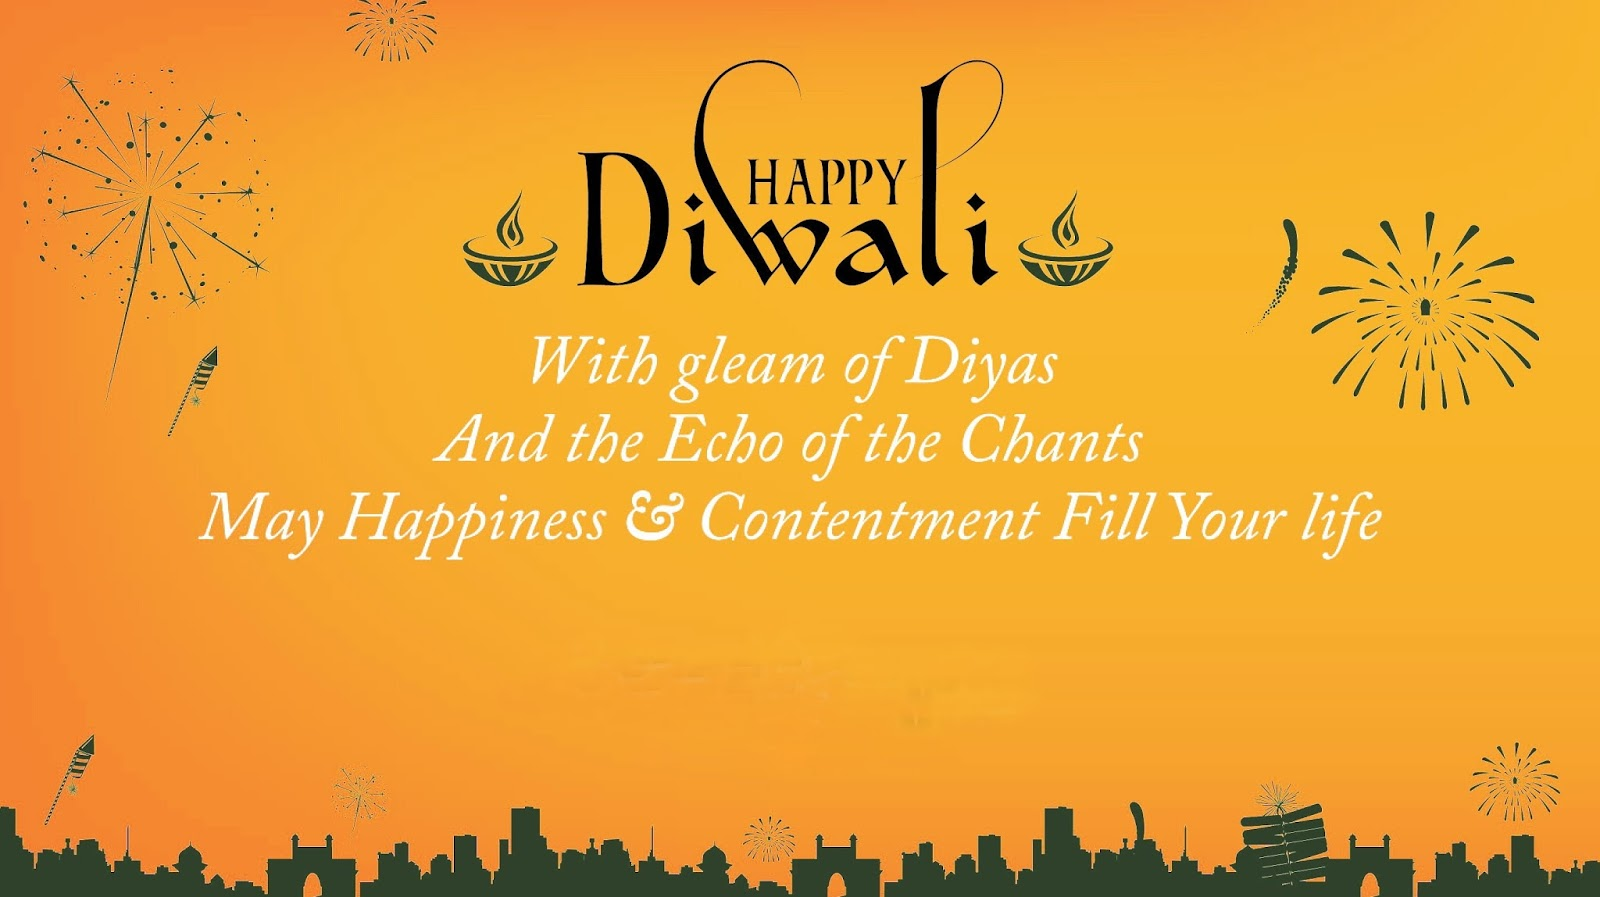 Diwali quotes only messages happy diwali quotes m4hsunfo